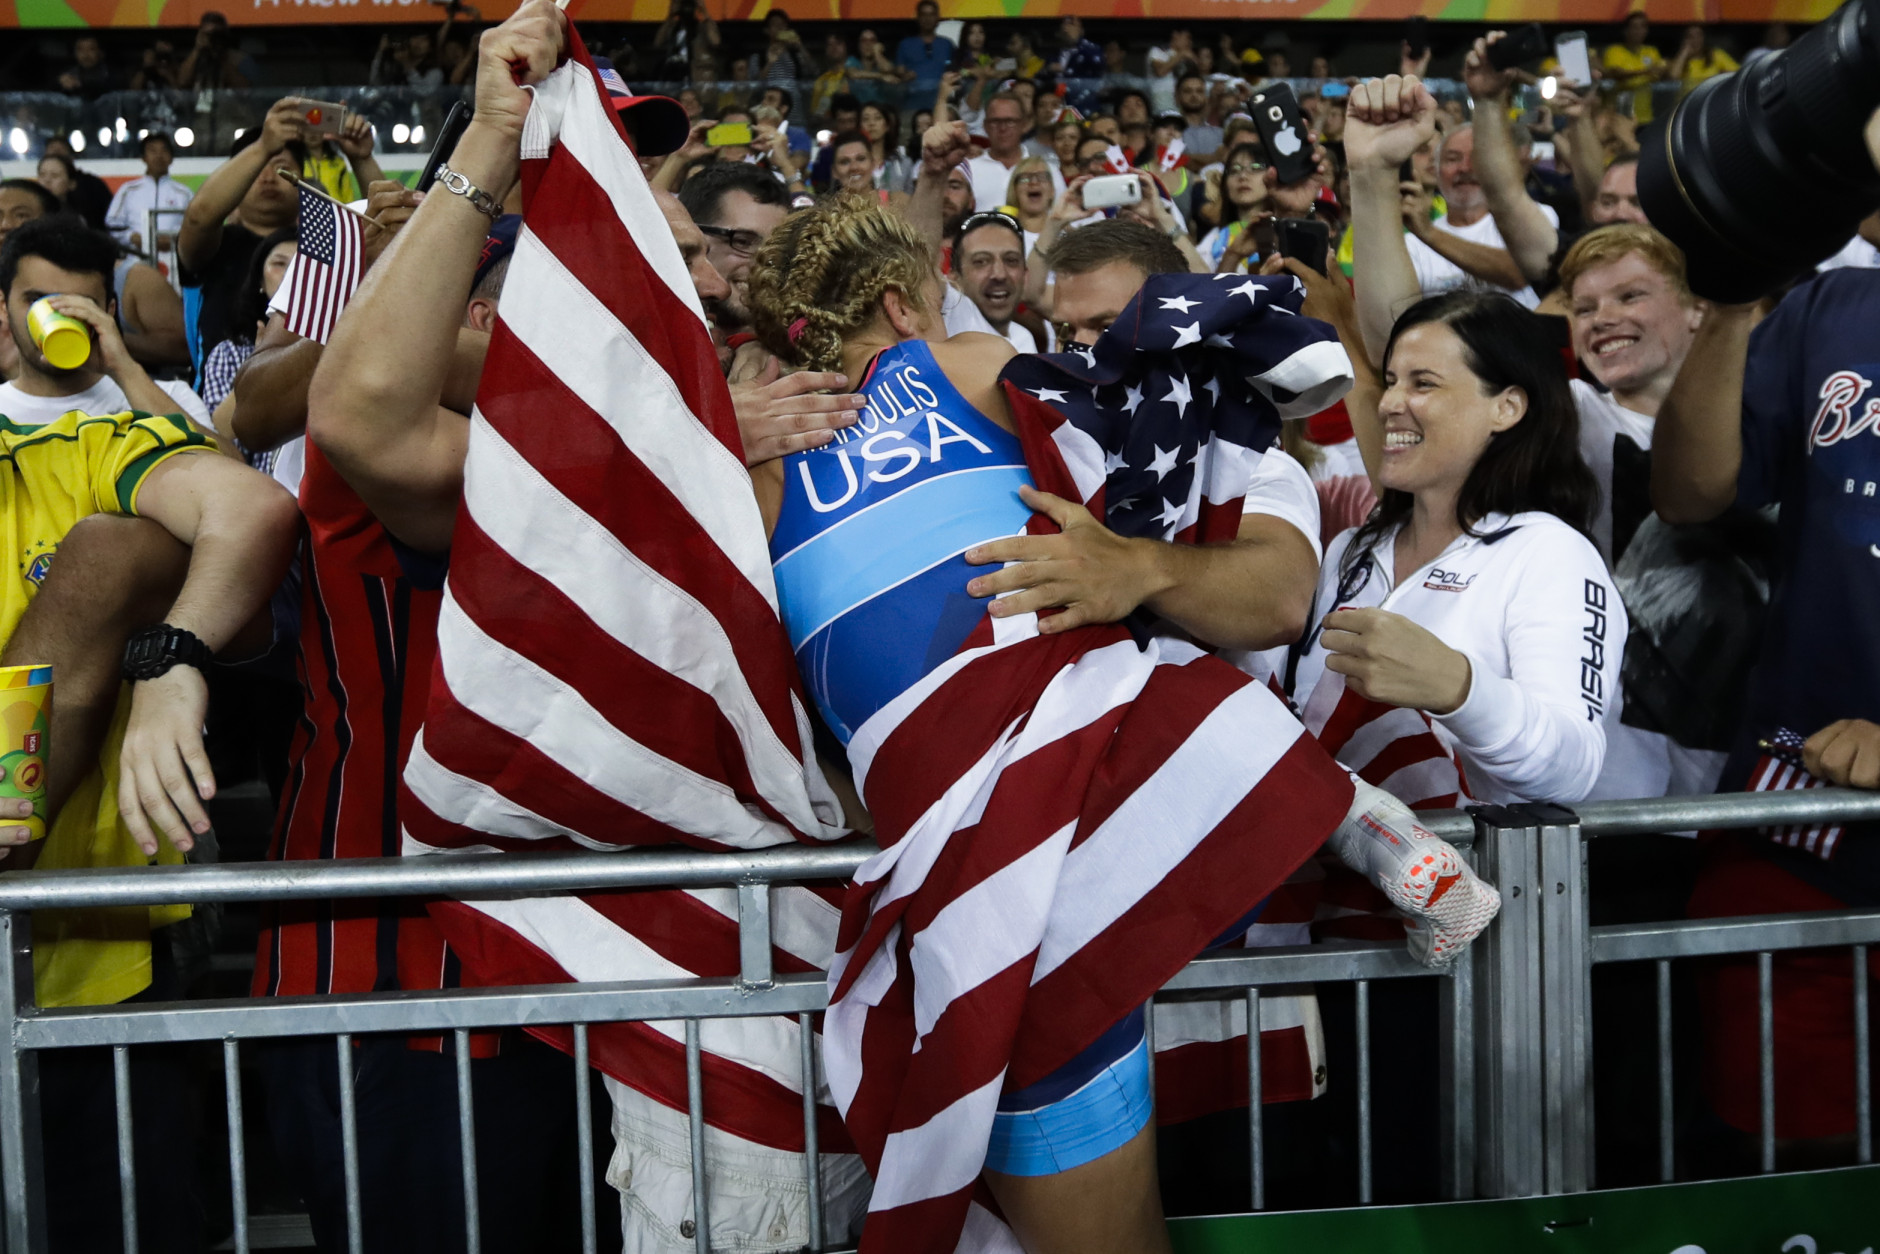 United States' Helen Louise Maroulis, centre, celebrates with fans after winning the gold medal during the women's 53-kg freestyle wrestling competition at the 2016 Summer Olympics in Rio de Janeiro, Brazil, Thursday, Aug. 18, 2016. (AP Photo/Markus Schreiber)